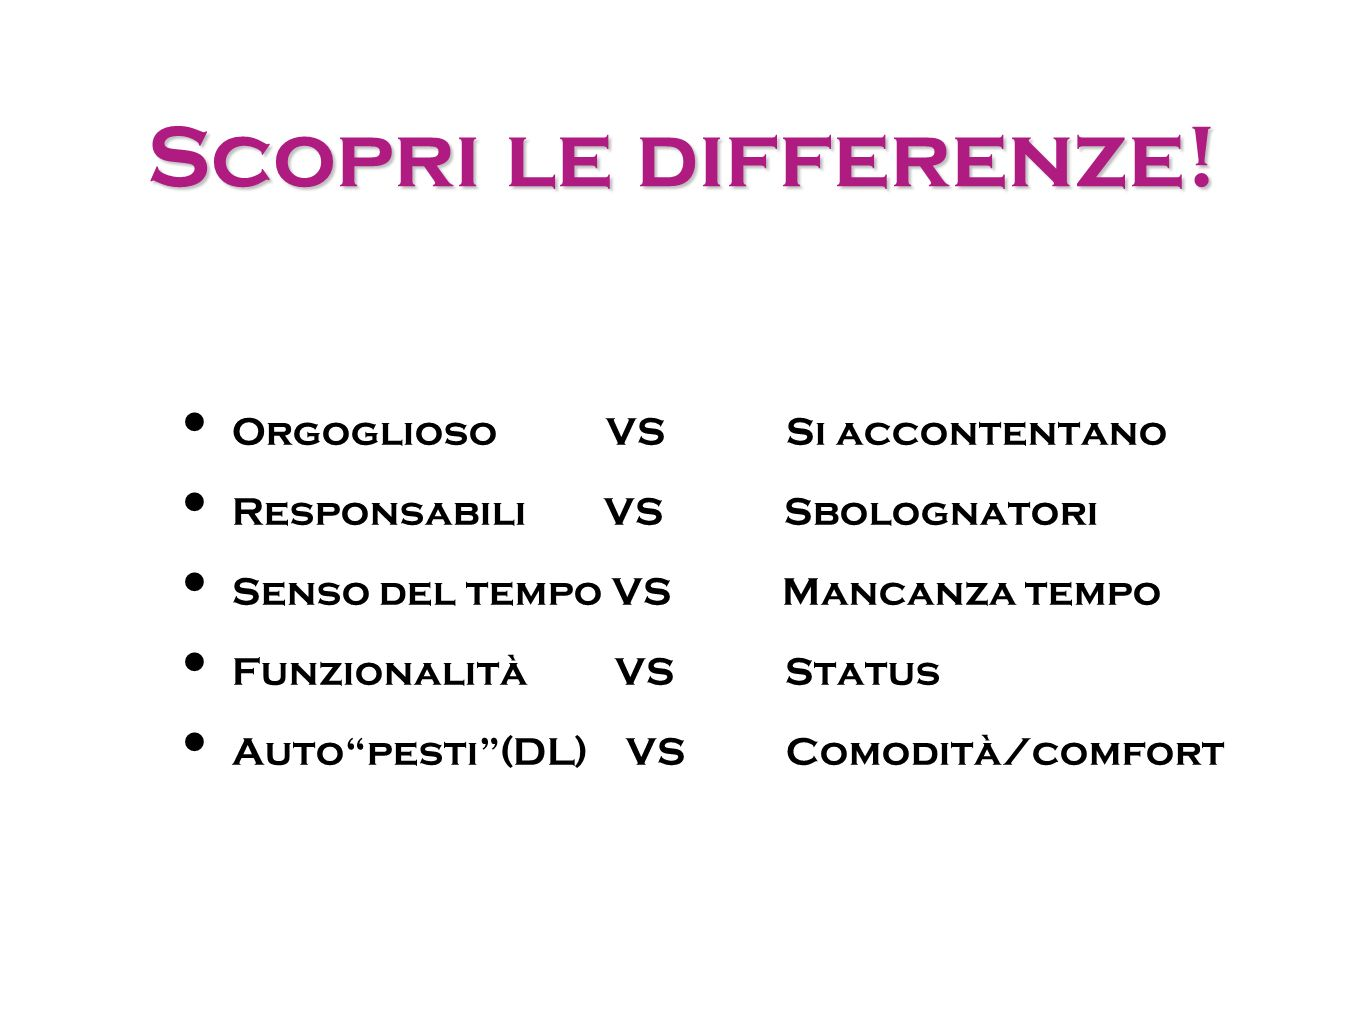 Scopri le differenze! Orgoglioso VS Si accontentano